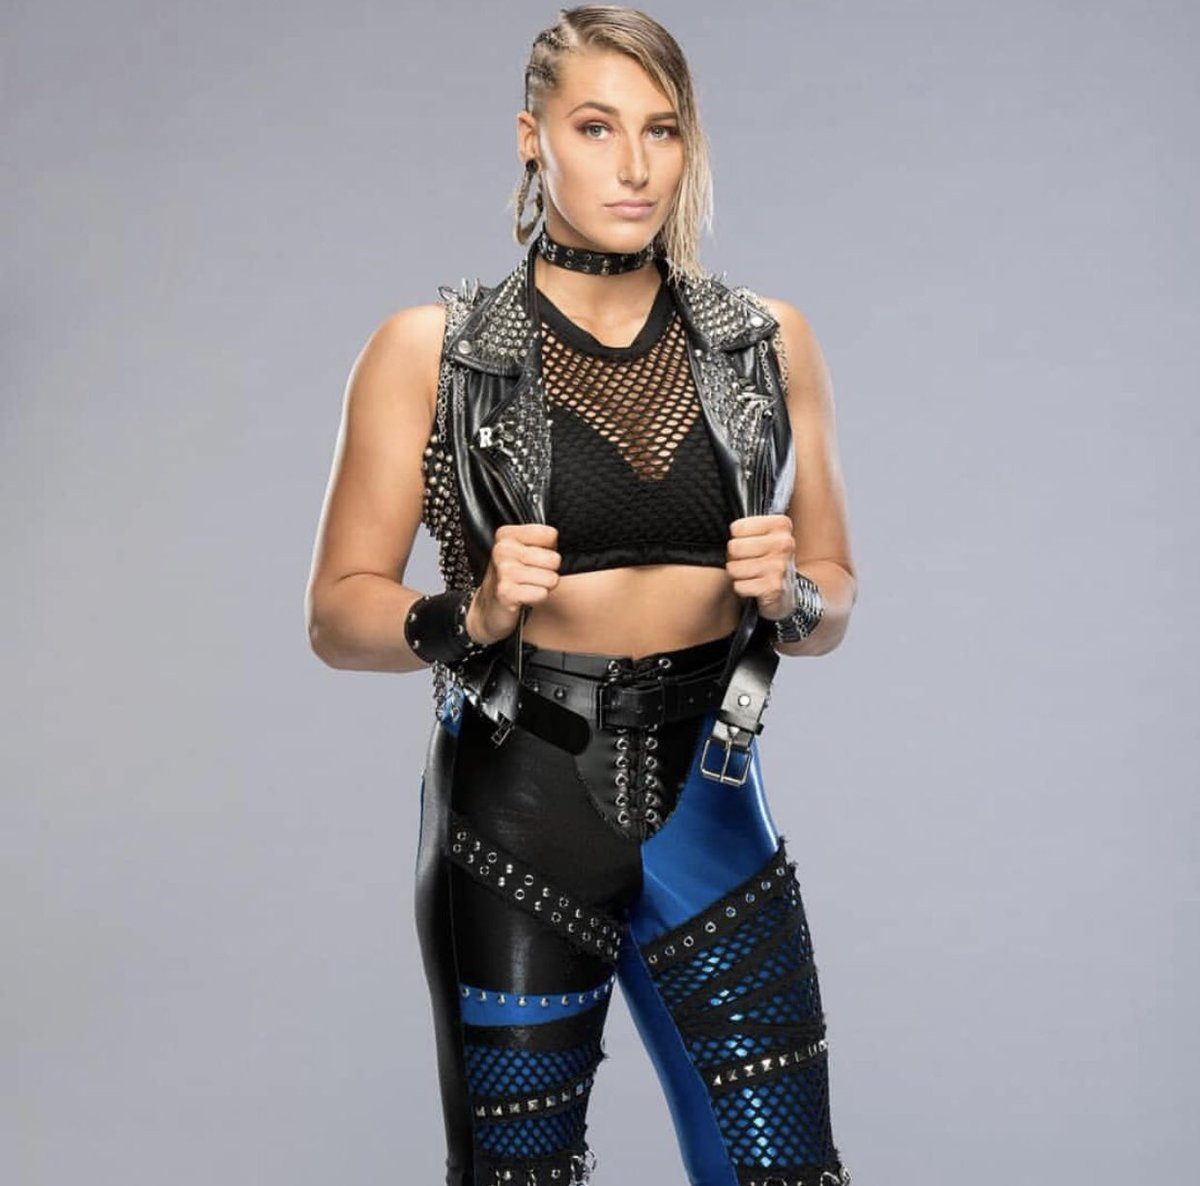 TheBethPhoenix photo